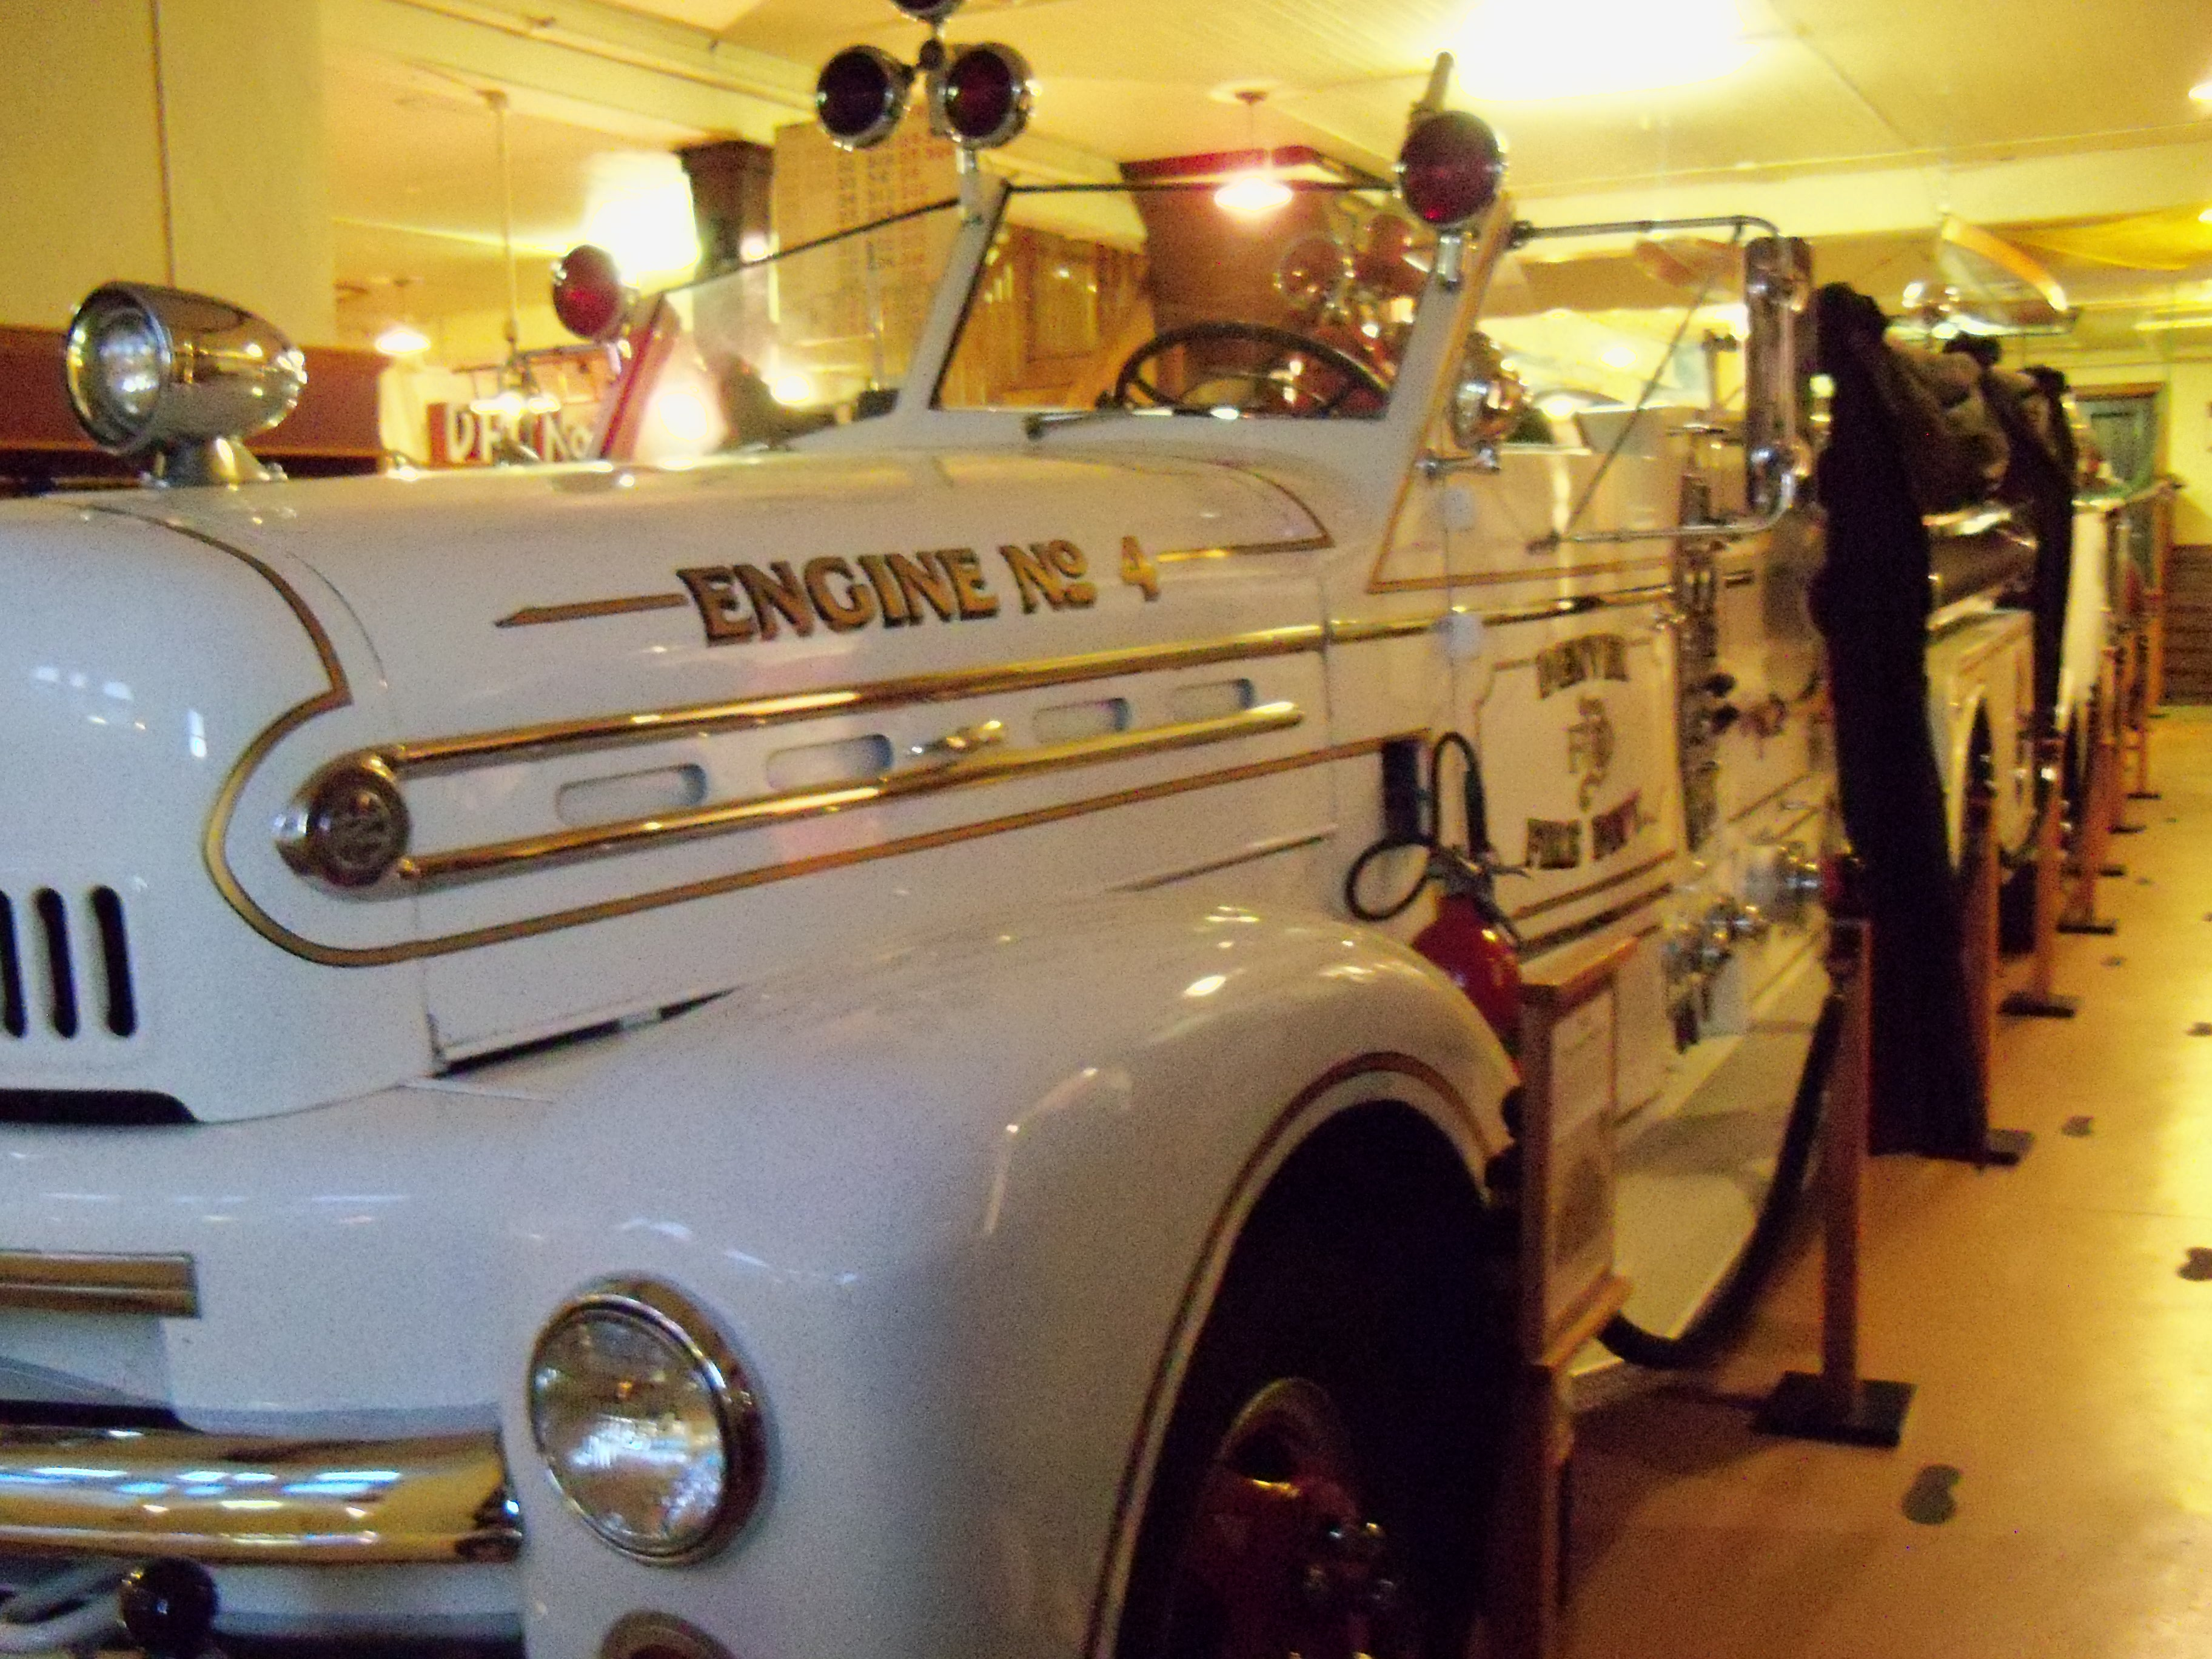 One of the old fire engines that are still on display.